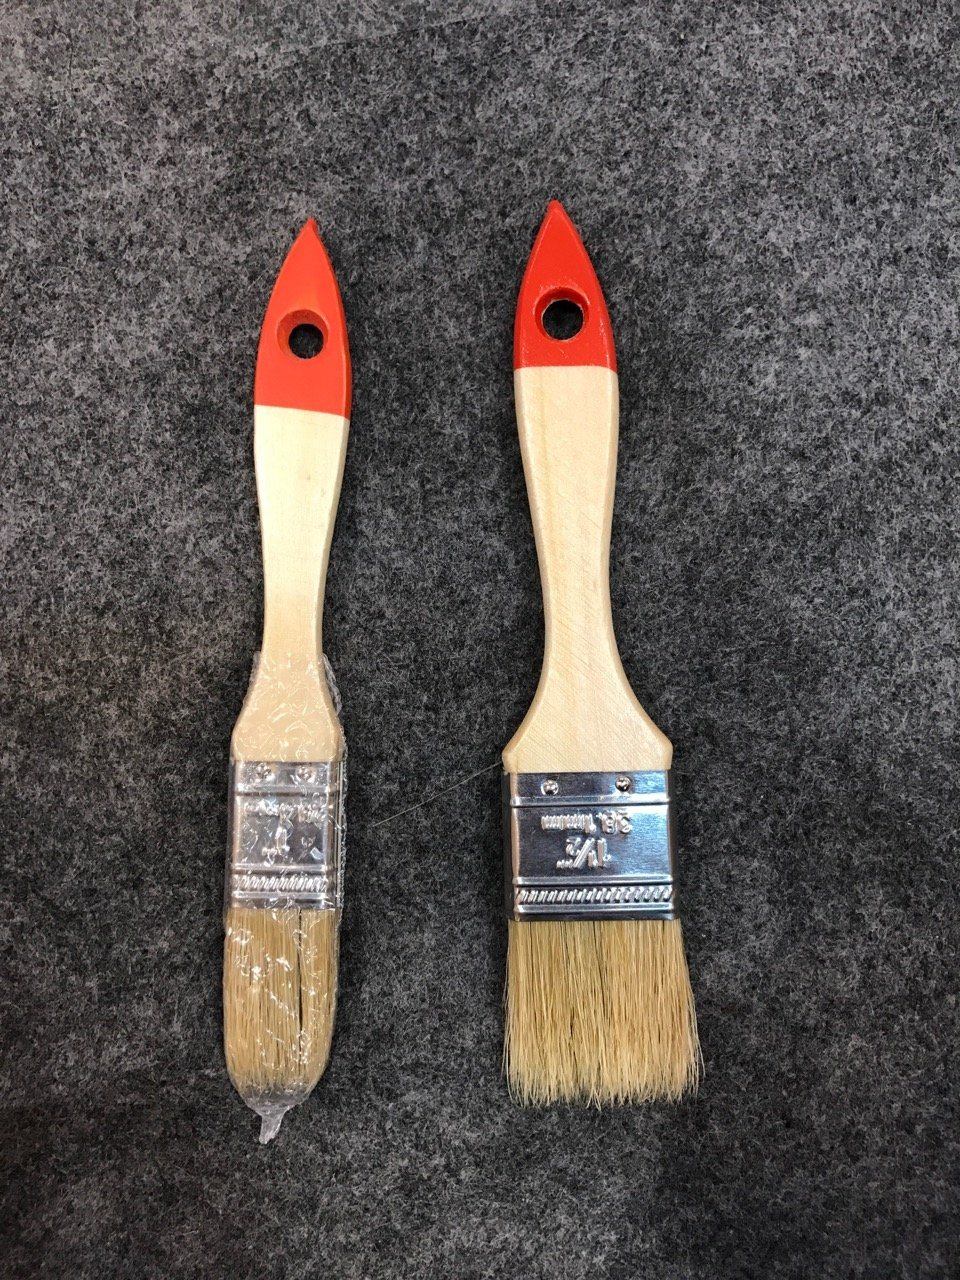 Wooden Handle 640 Paint Brush with Bristle Material